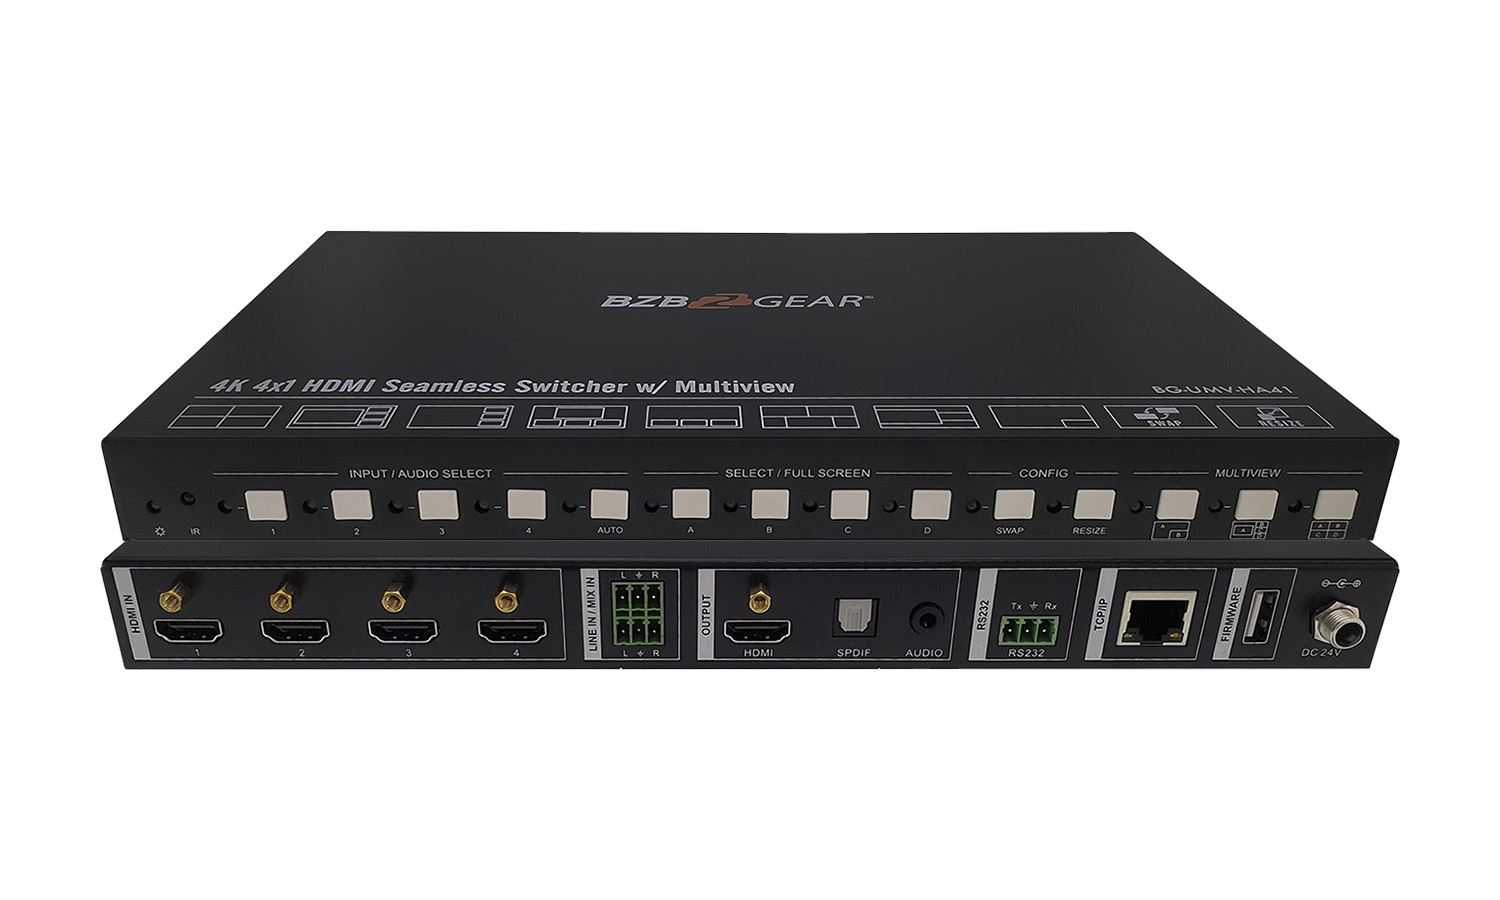 BG-UMV-HA41 4K 4X1 HDMI Seamless Switcher/Scaler with Audio and Multiview by BZBGEAR